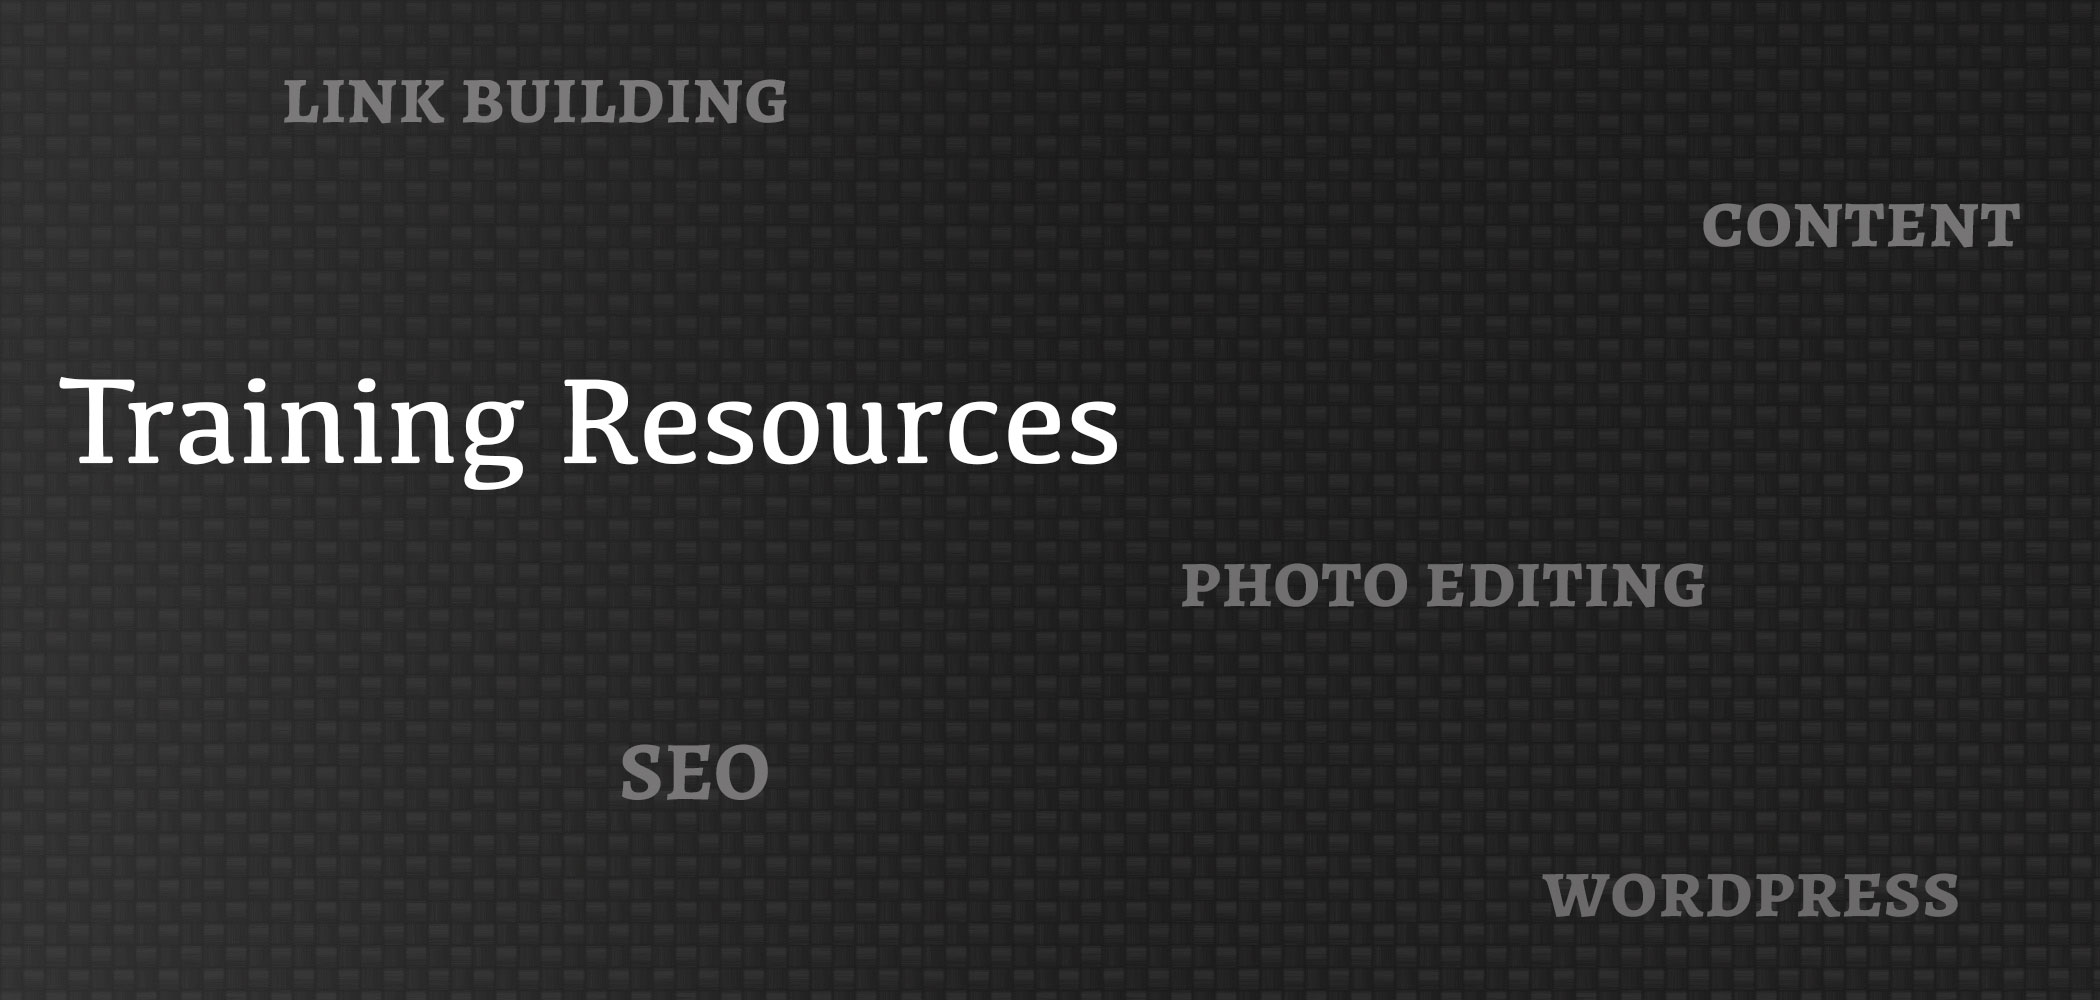 seo wordpress training resource center